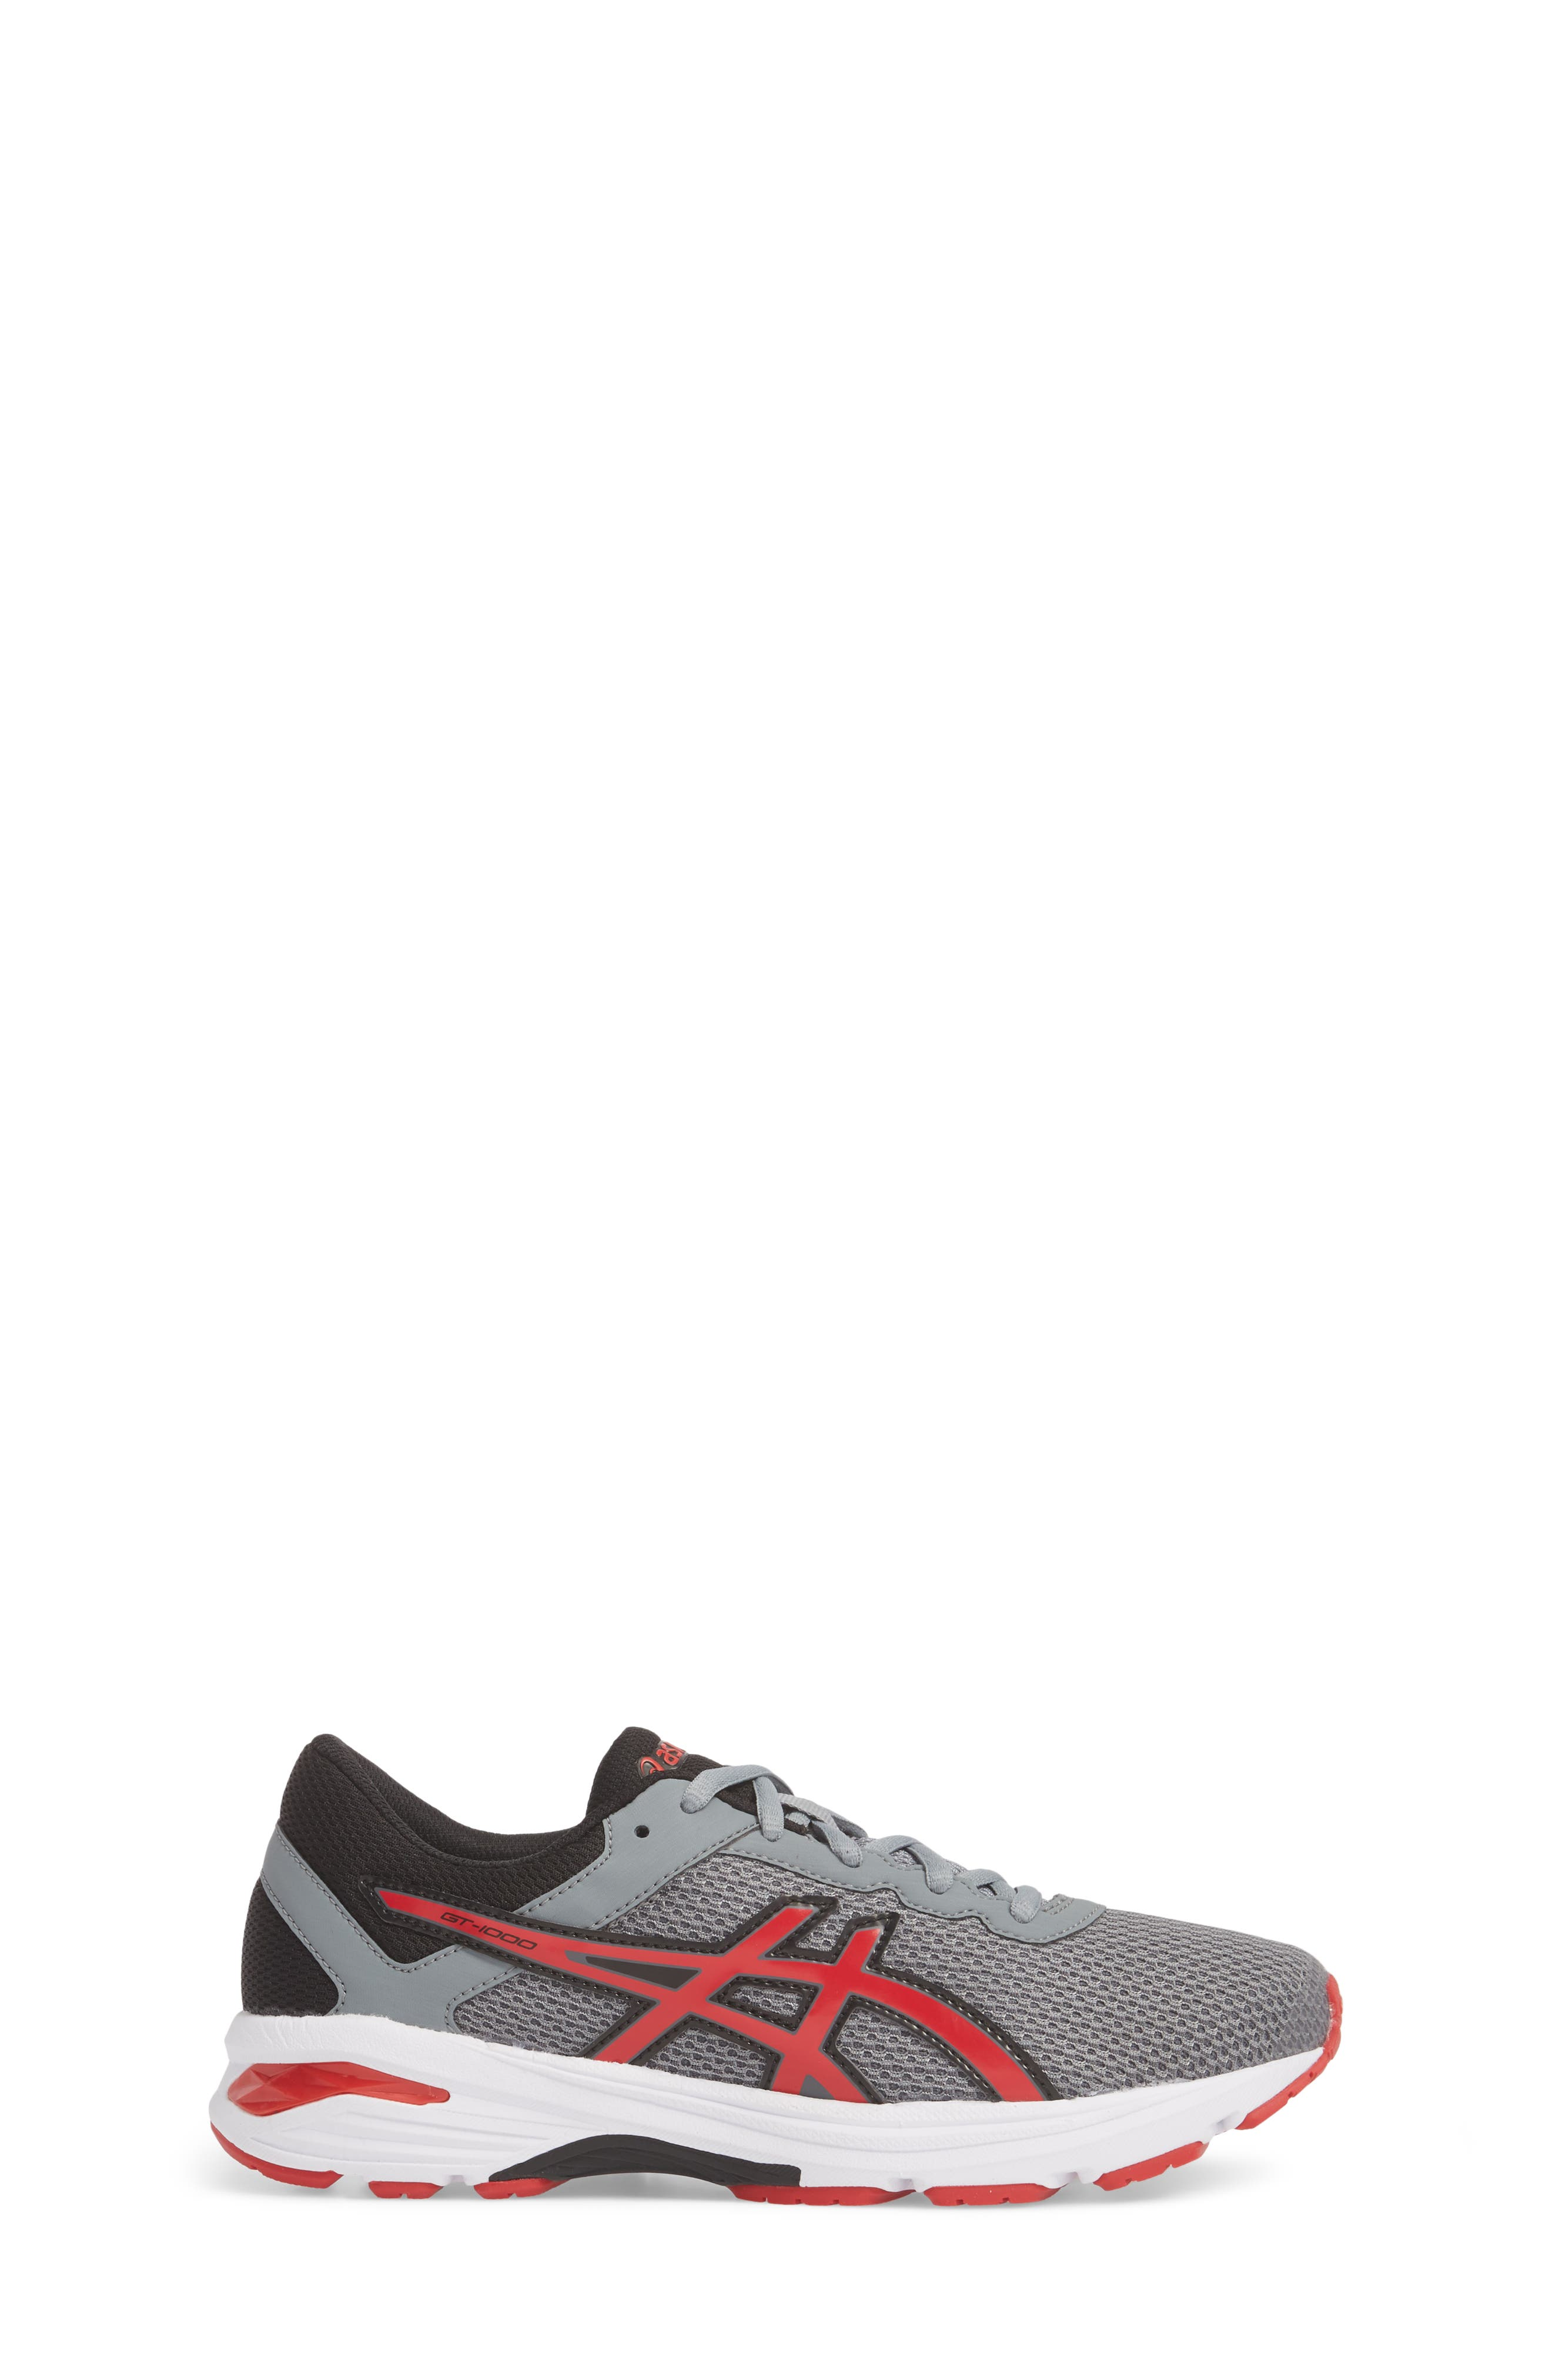 Asics GT-1000<sup>™</sup> 6 GS Sneaker,                             Alternate thumbnail 3, color,                             Stone Grey/ Classic Red/ Black